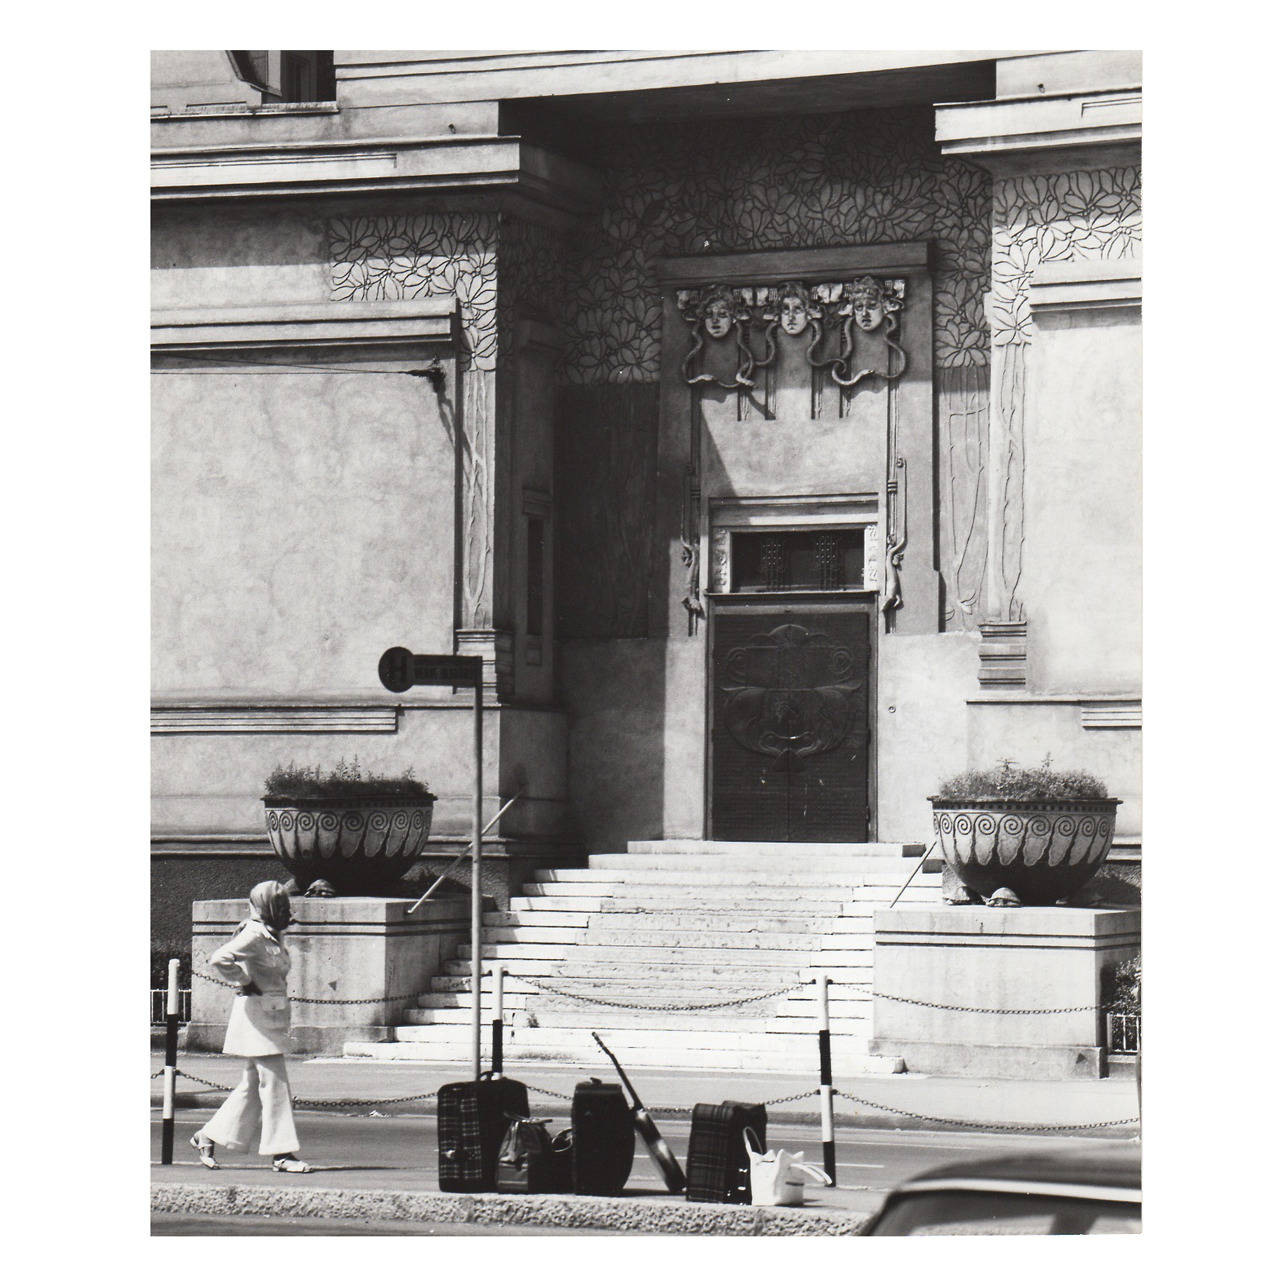 Lucca Chmel Details of the Secession, Vienna: the Entrance, vintage photograph